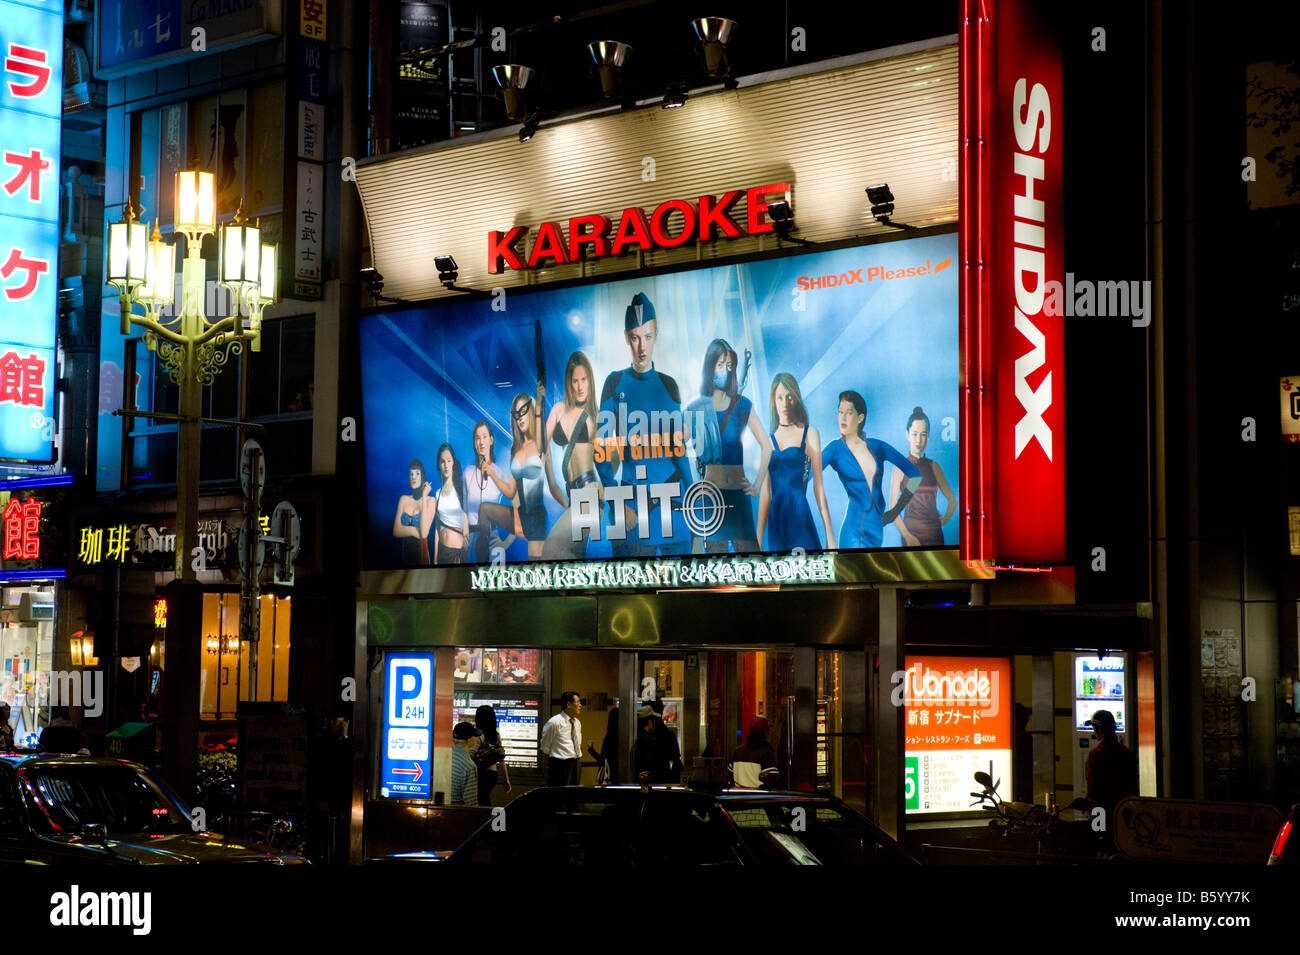 Karaoke venue at night in Shinjuku, Tokyo, Japan Stock Photo